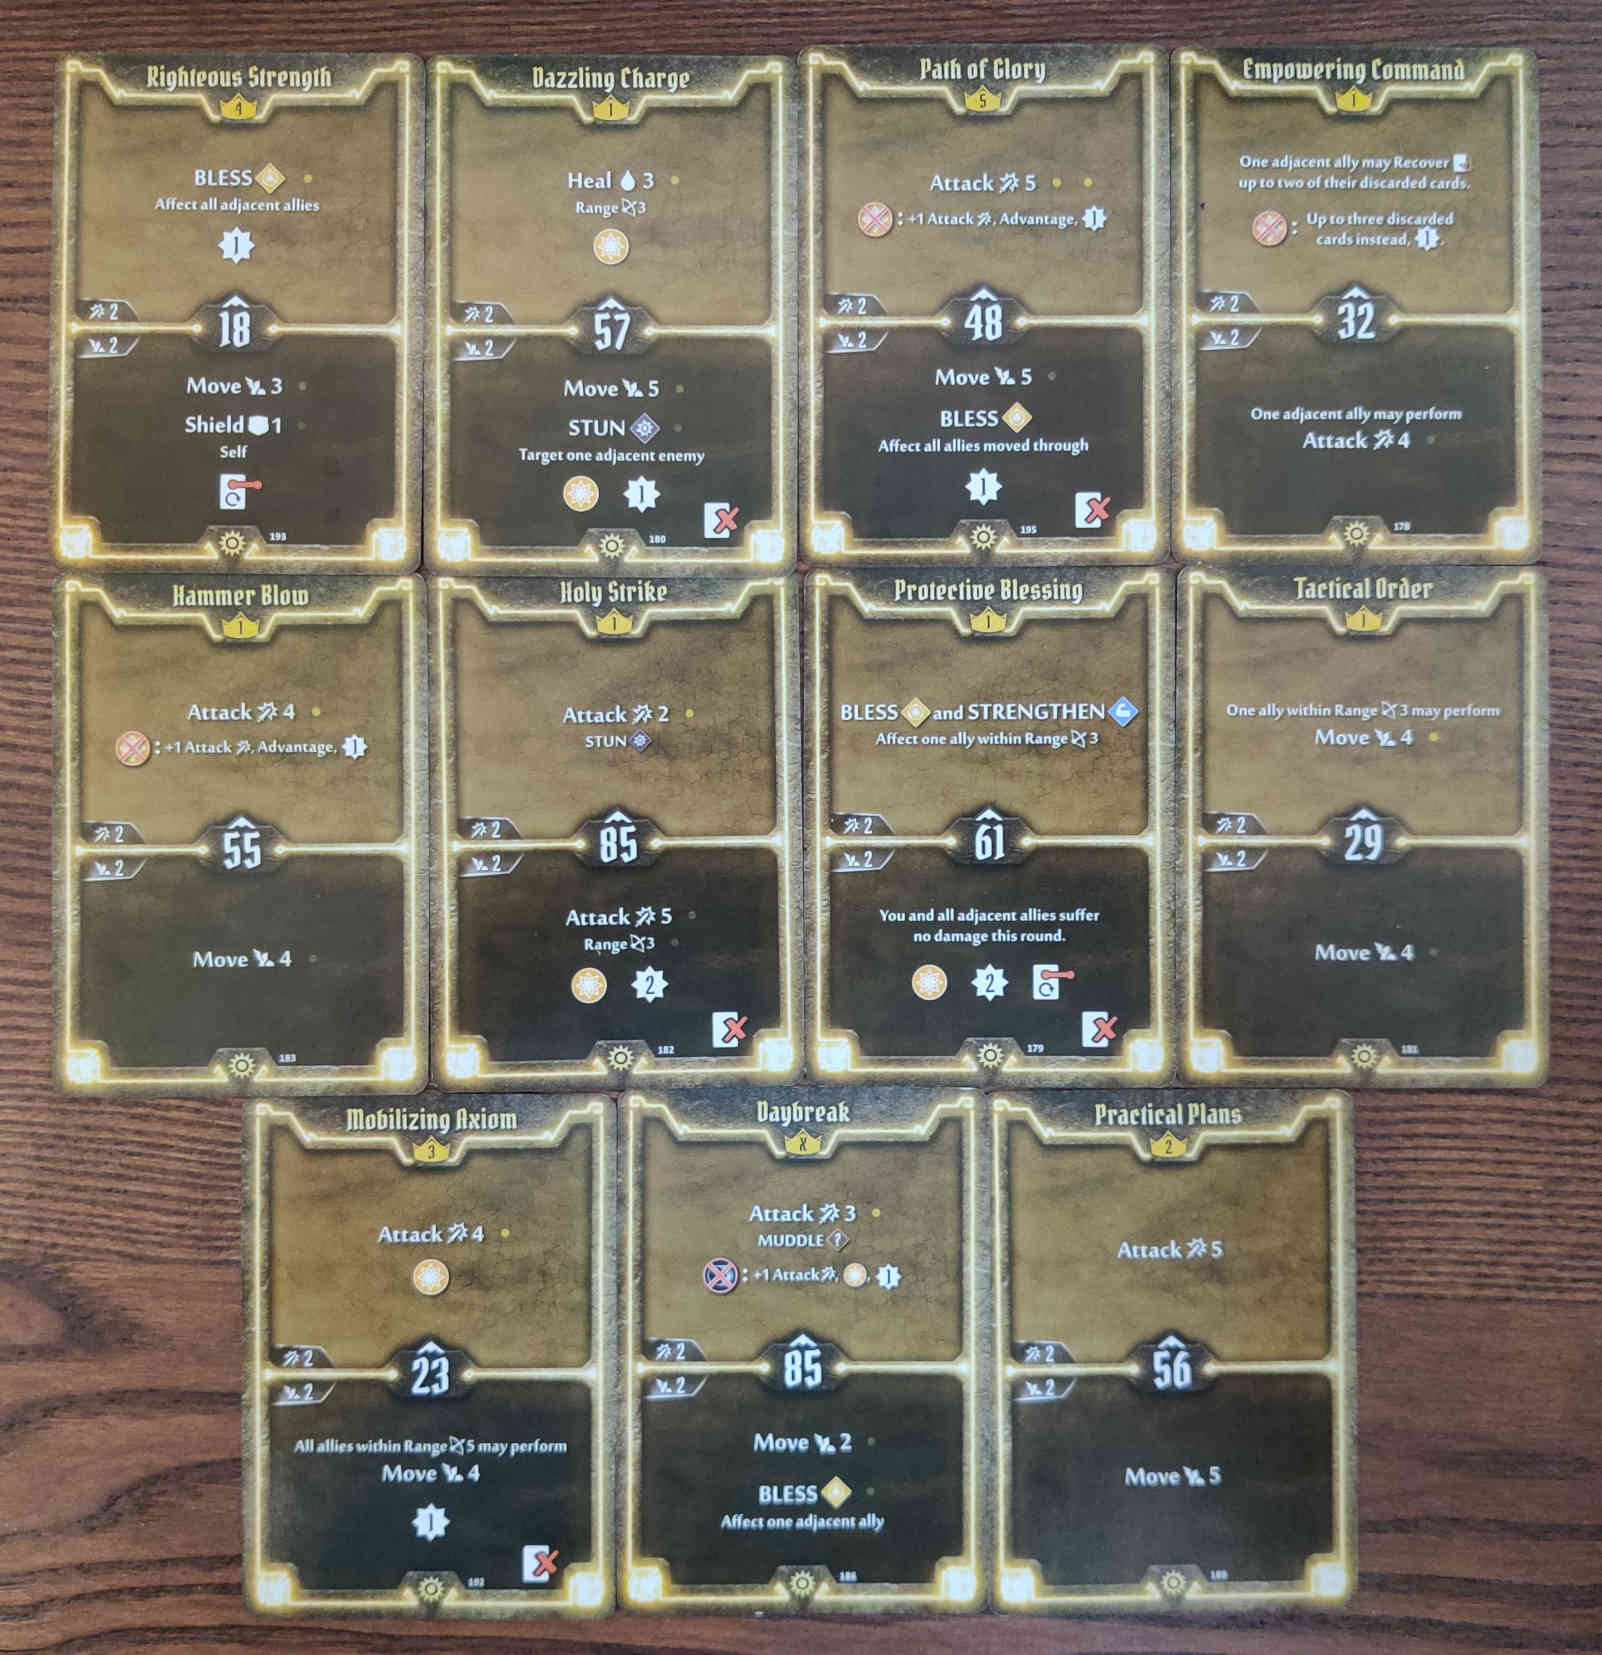 Gloomhaven Sunkeeper Damage Build Level 5 cards